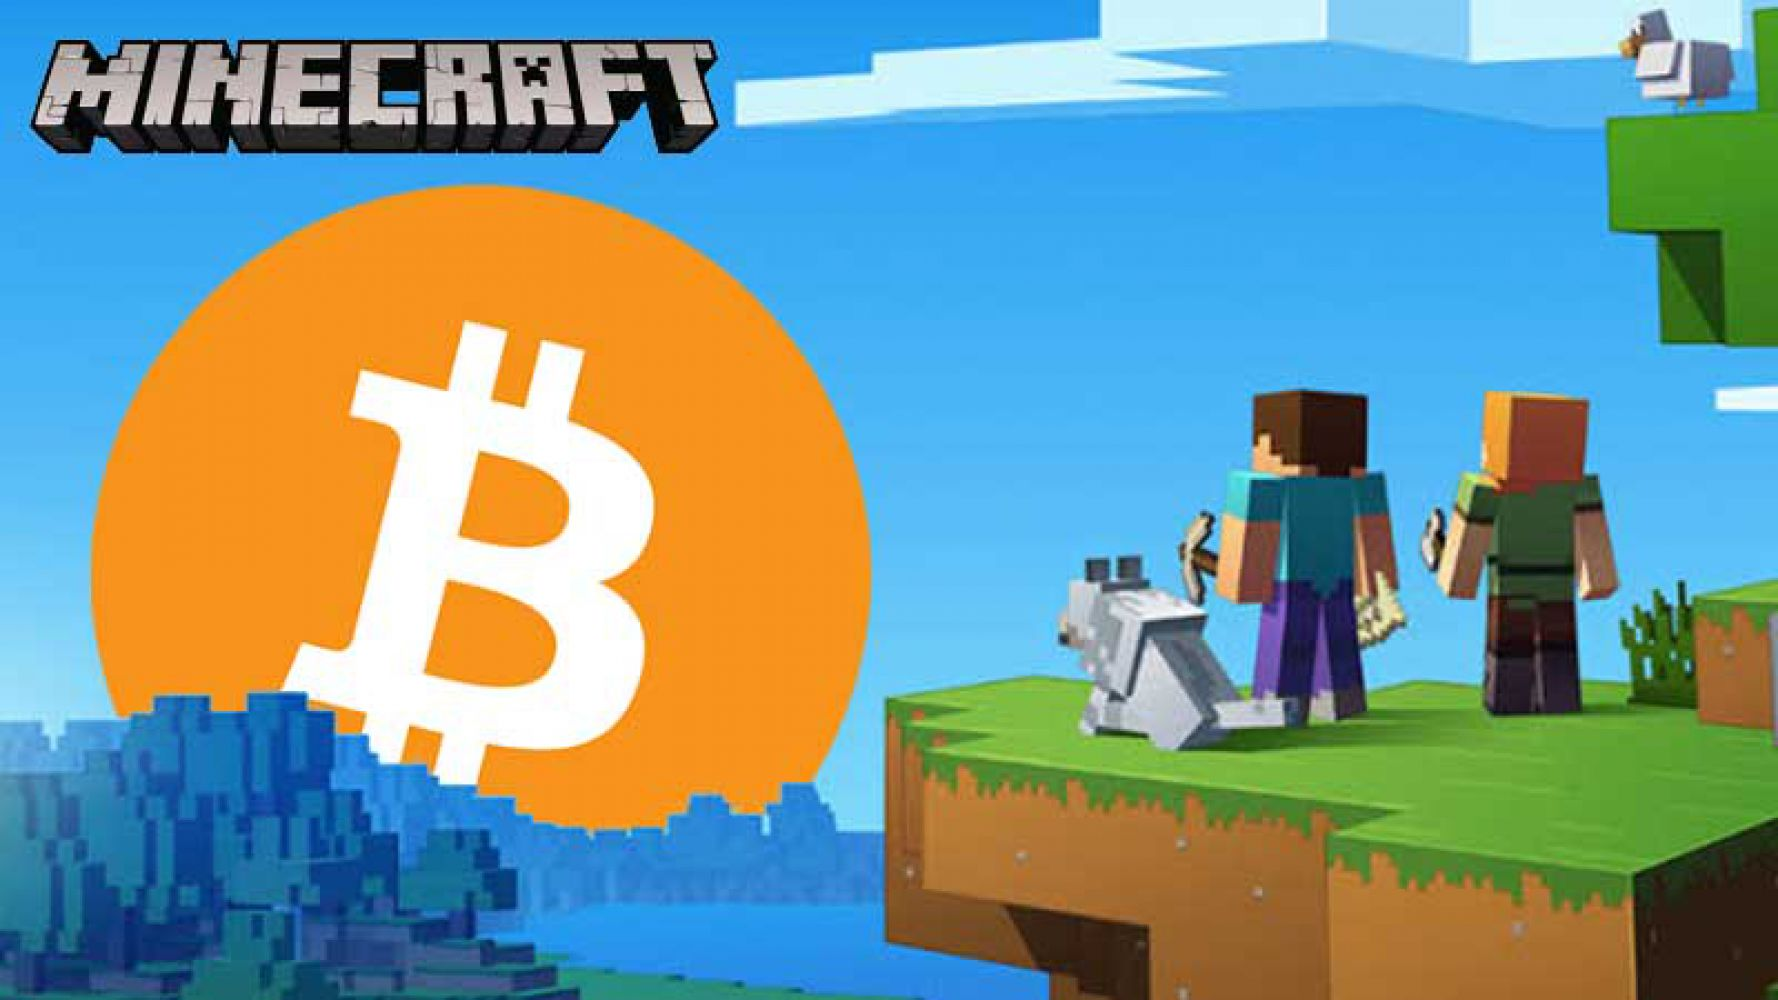 Minecraft players are looking for Bitcoin